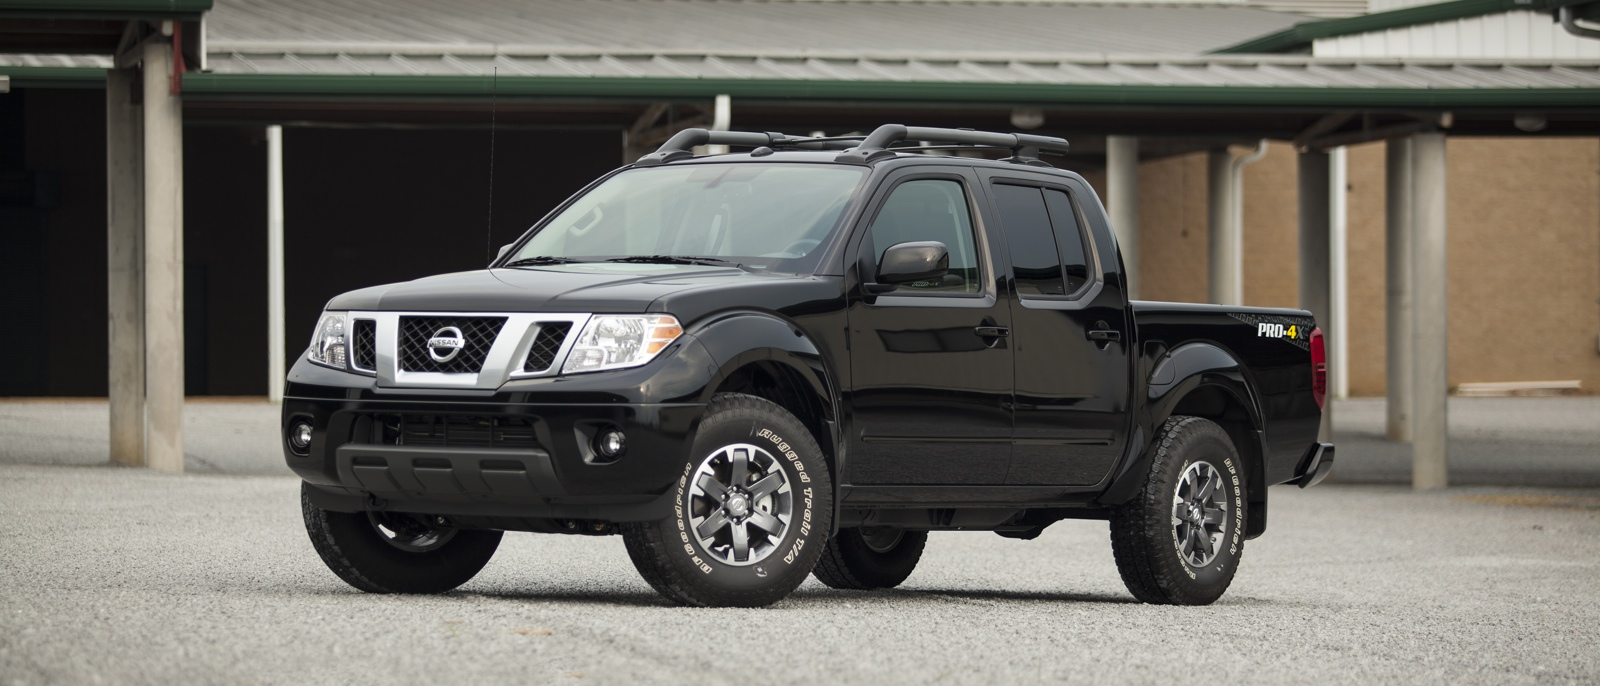 sv charlotte city frontier palace revo nissan sales nc in auto